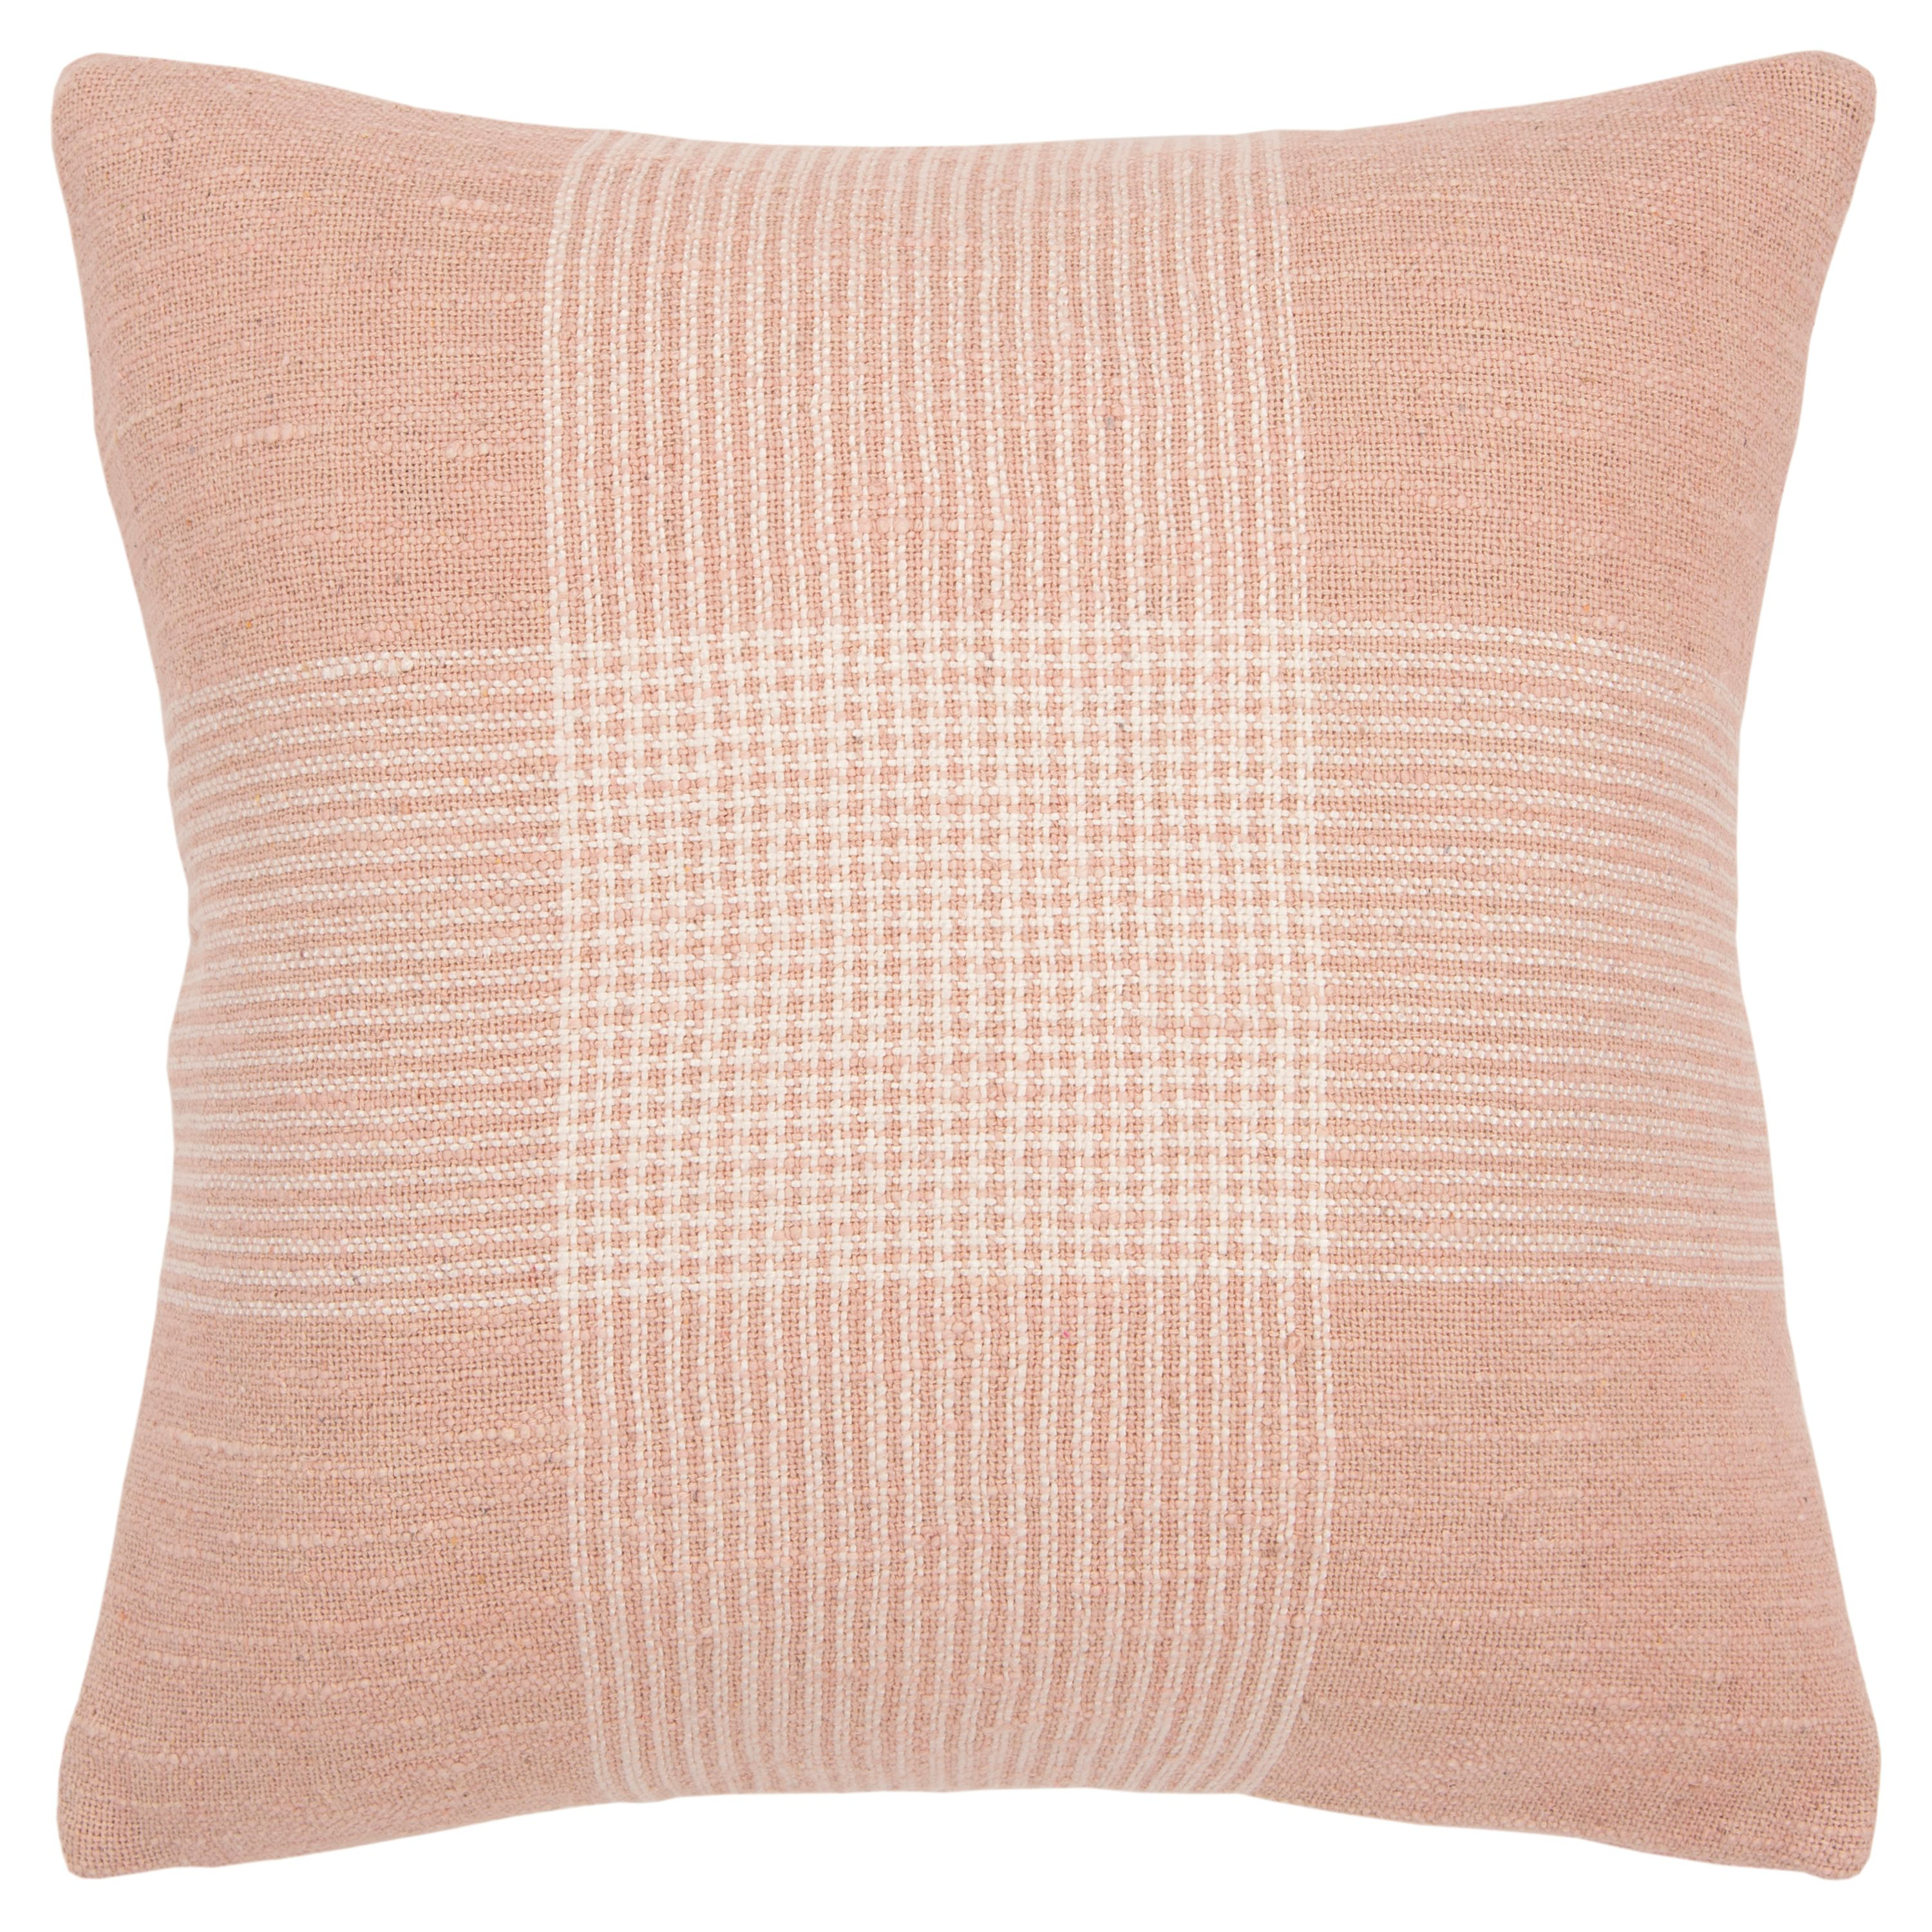 "Rizzy Home Decorative Down Filled Throw Pillow Plaid 20""X20"" Blush"